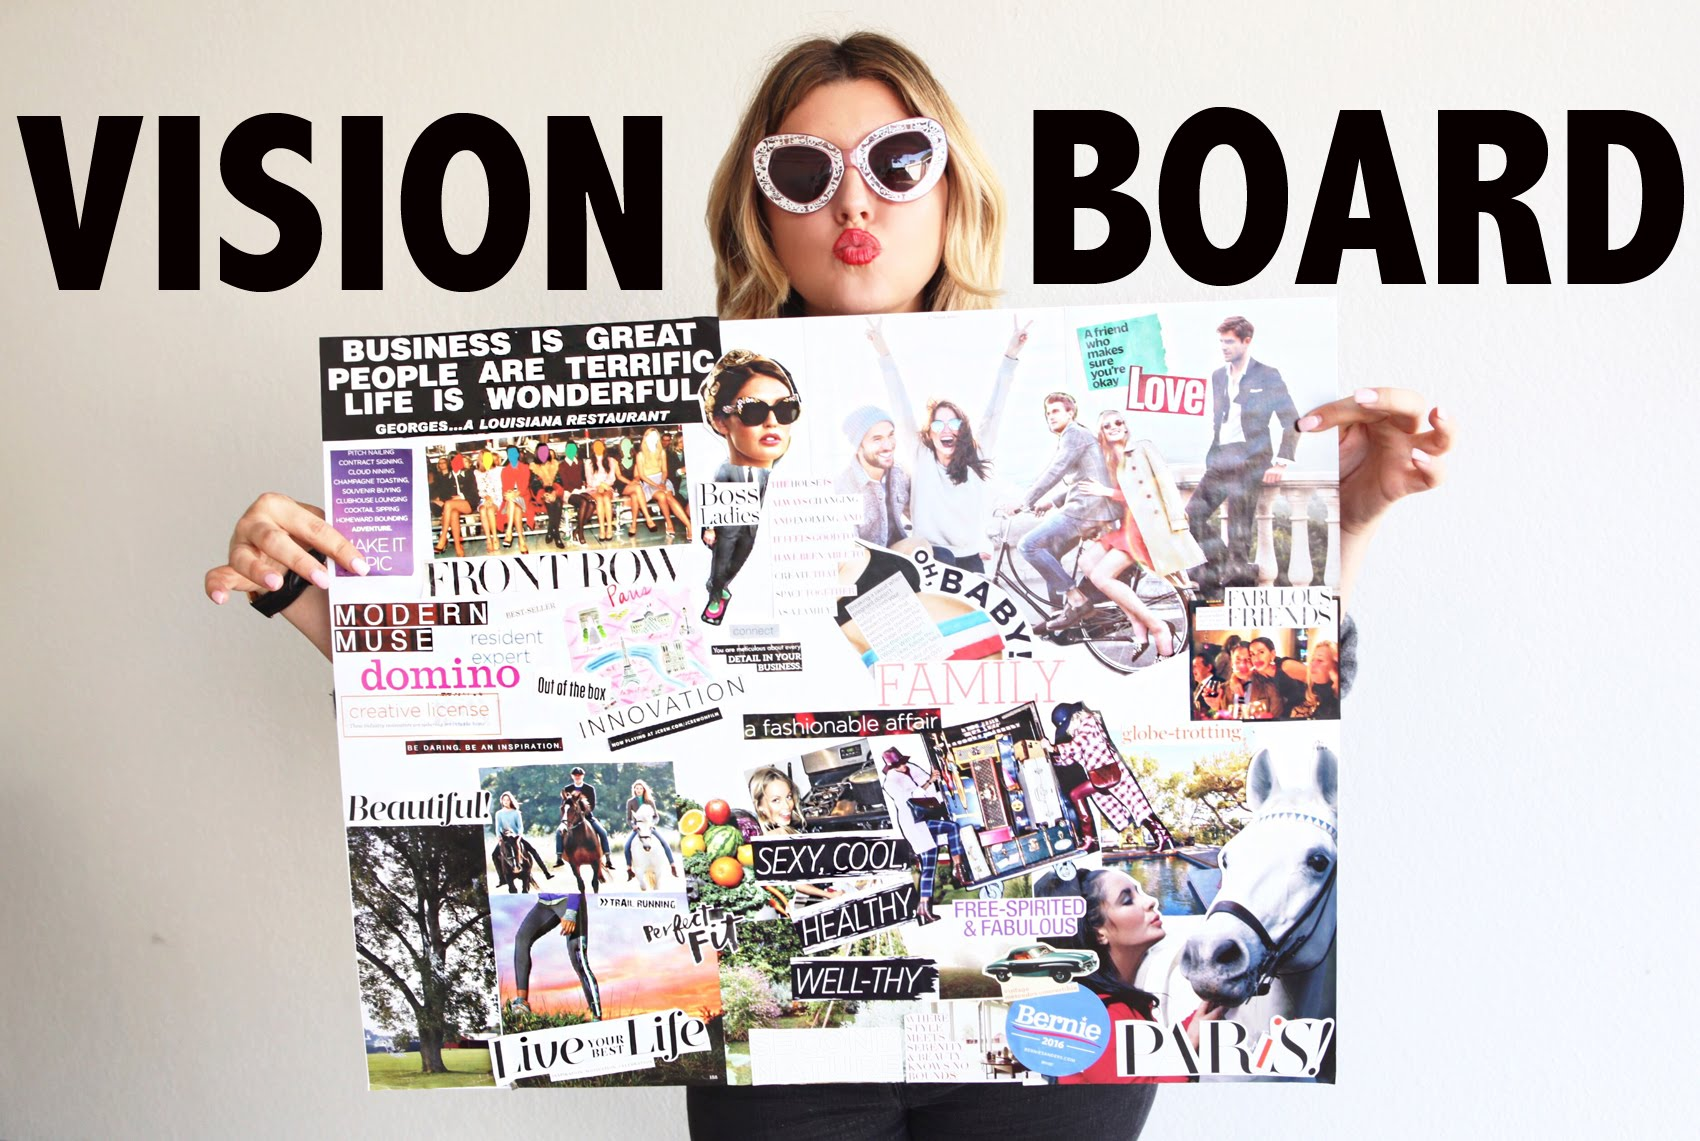 creating vision board Want to know how to create a vision board that really works these are 4 simple stepson how to create a vision board that can change your life.